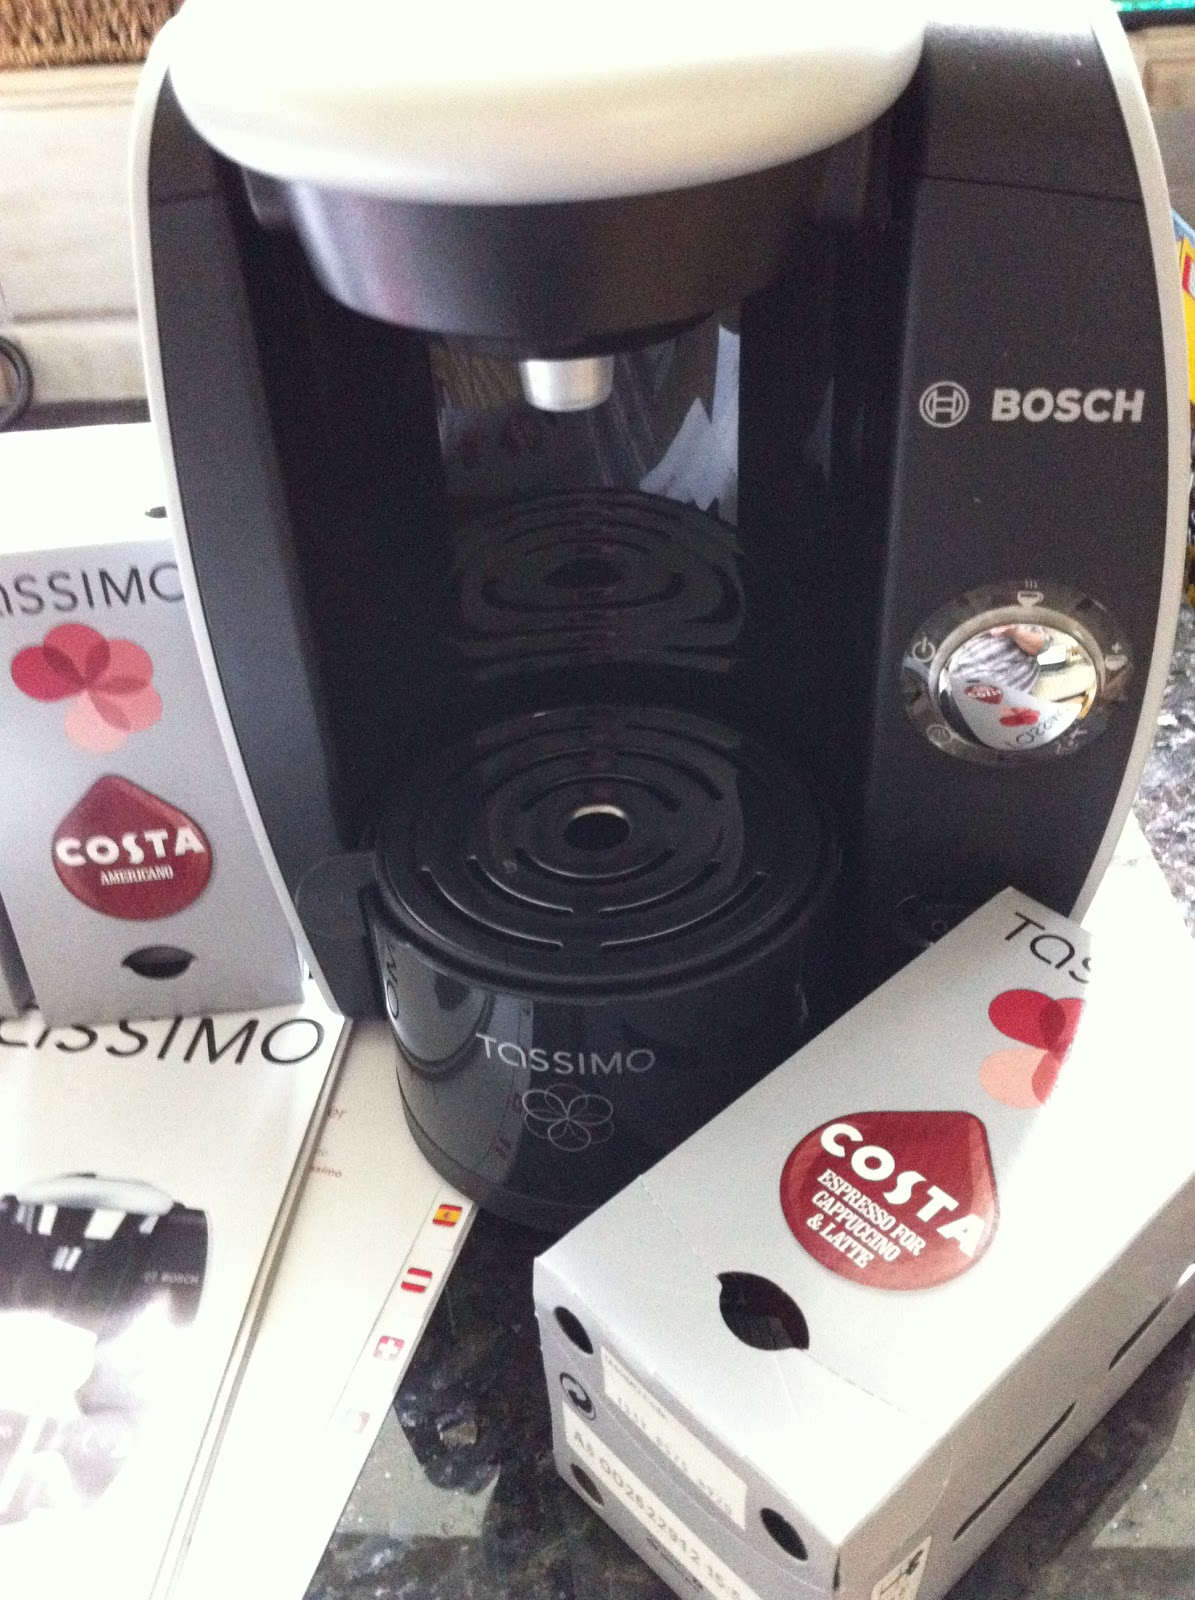 Electronic Tassimo T65 Coffee Machine tassimo coffee machine yahoo espresso lcd premium t65 home brewing system by bosch review and